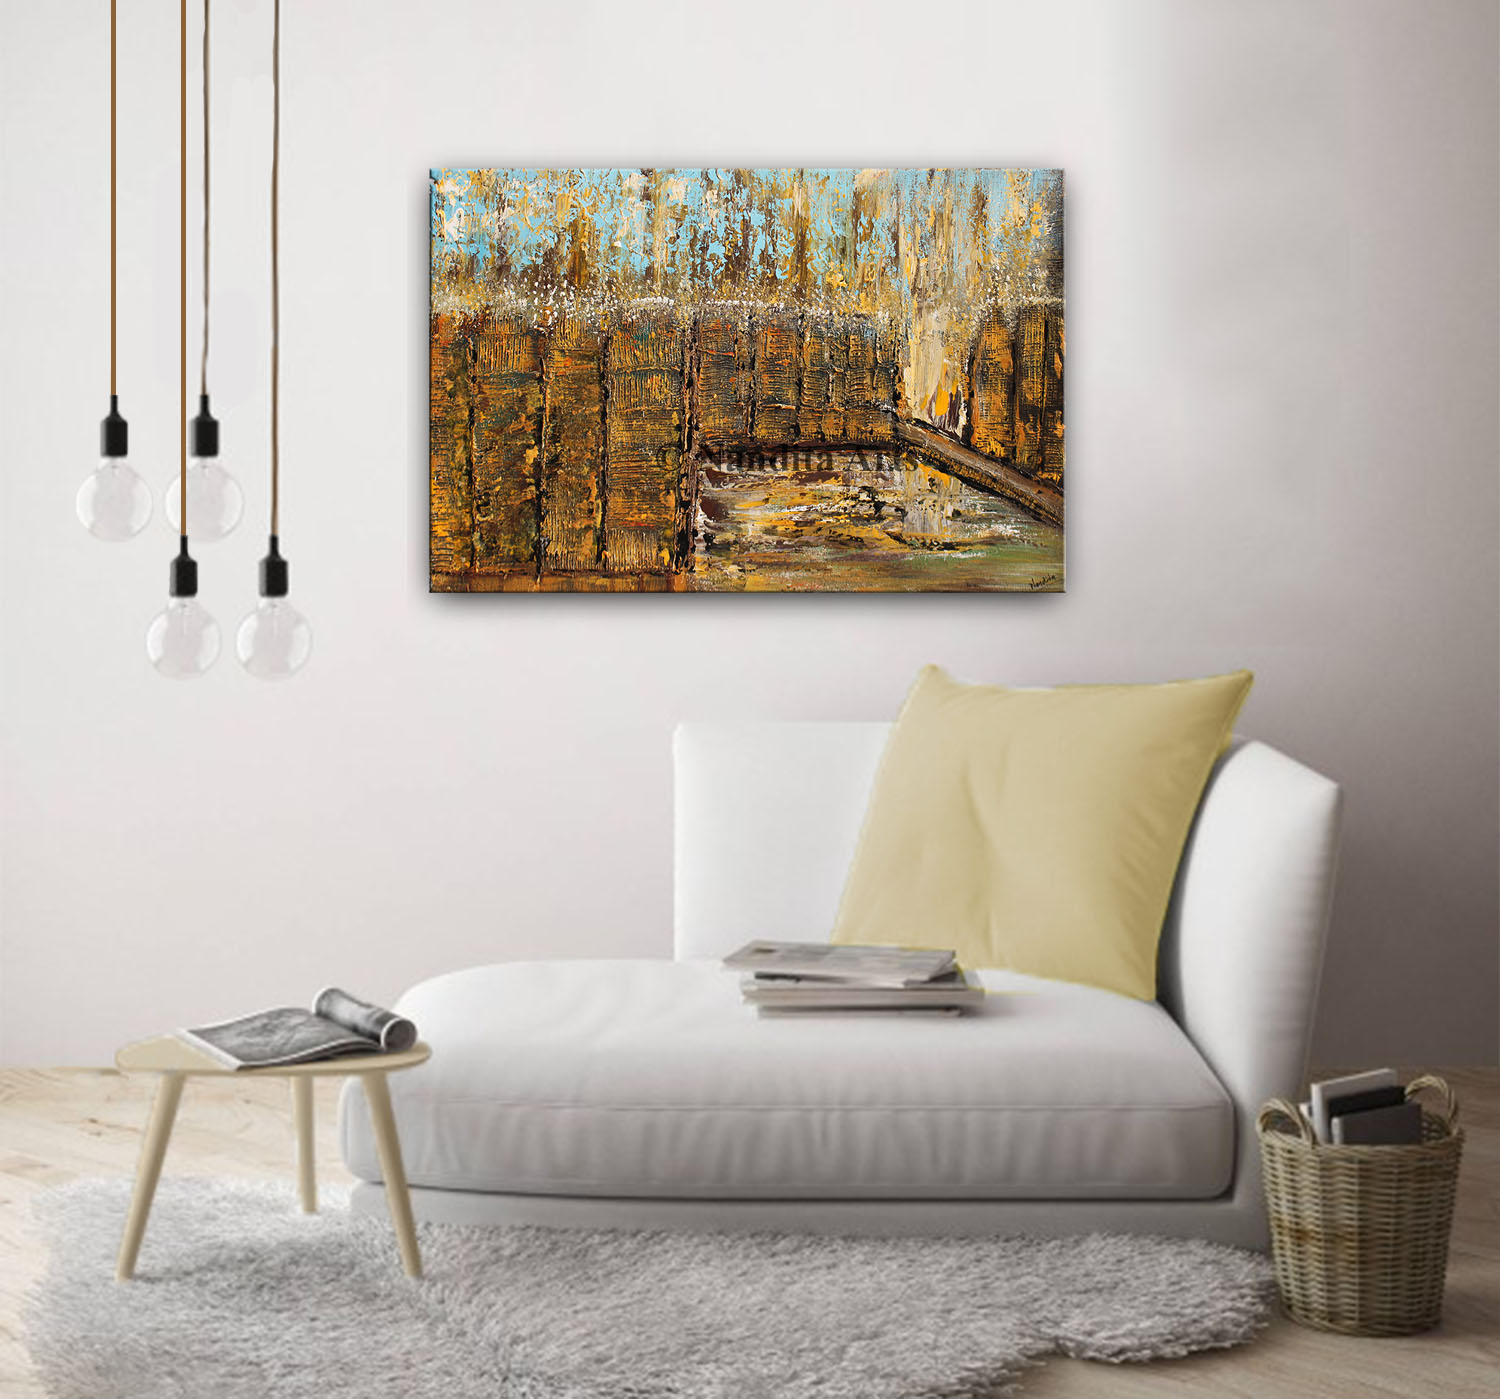 Textured Cityscape, Skyline Wall Art by Nandita Albright